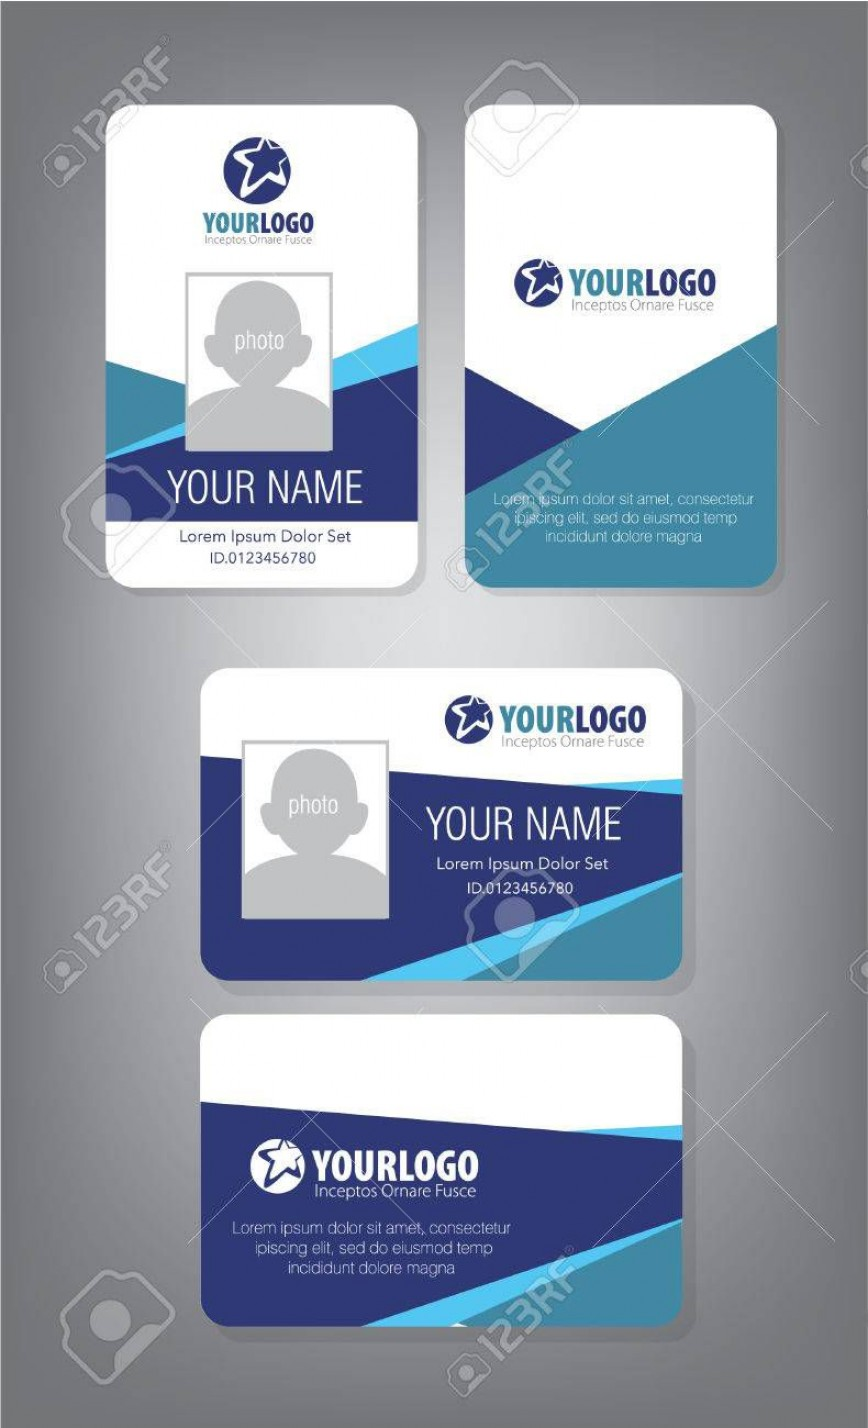 001 Unique Employee Id Badge Template Example  Card Free Download Avery Photoshop